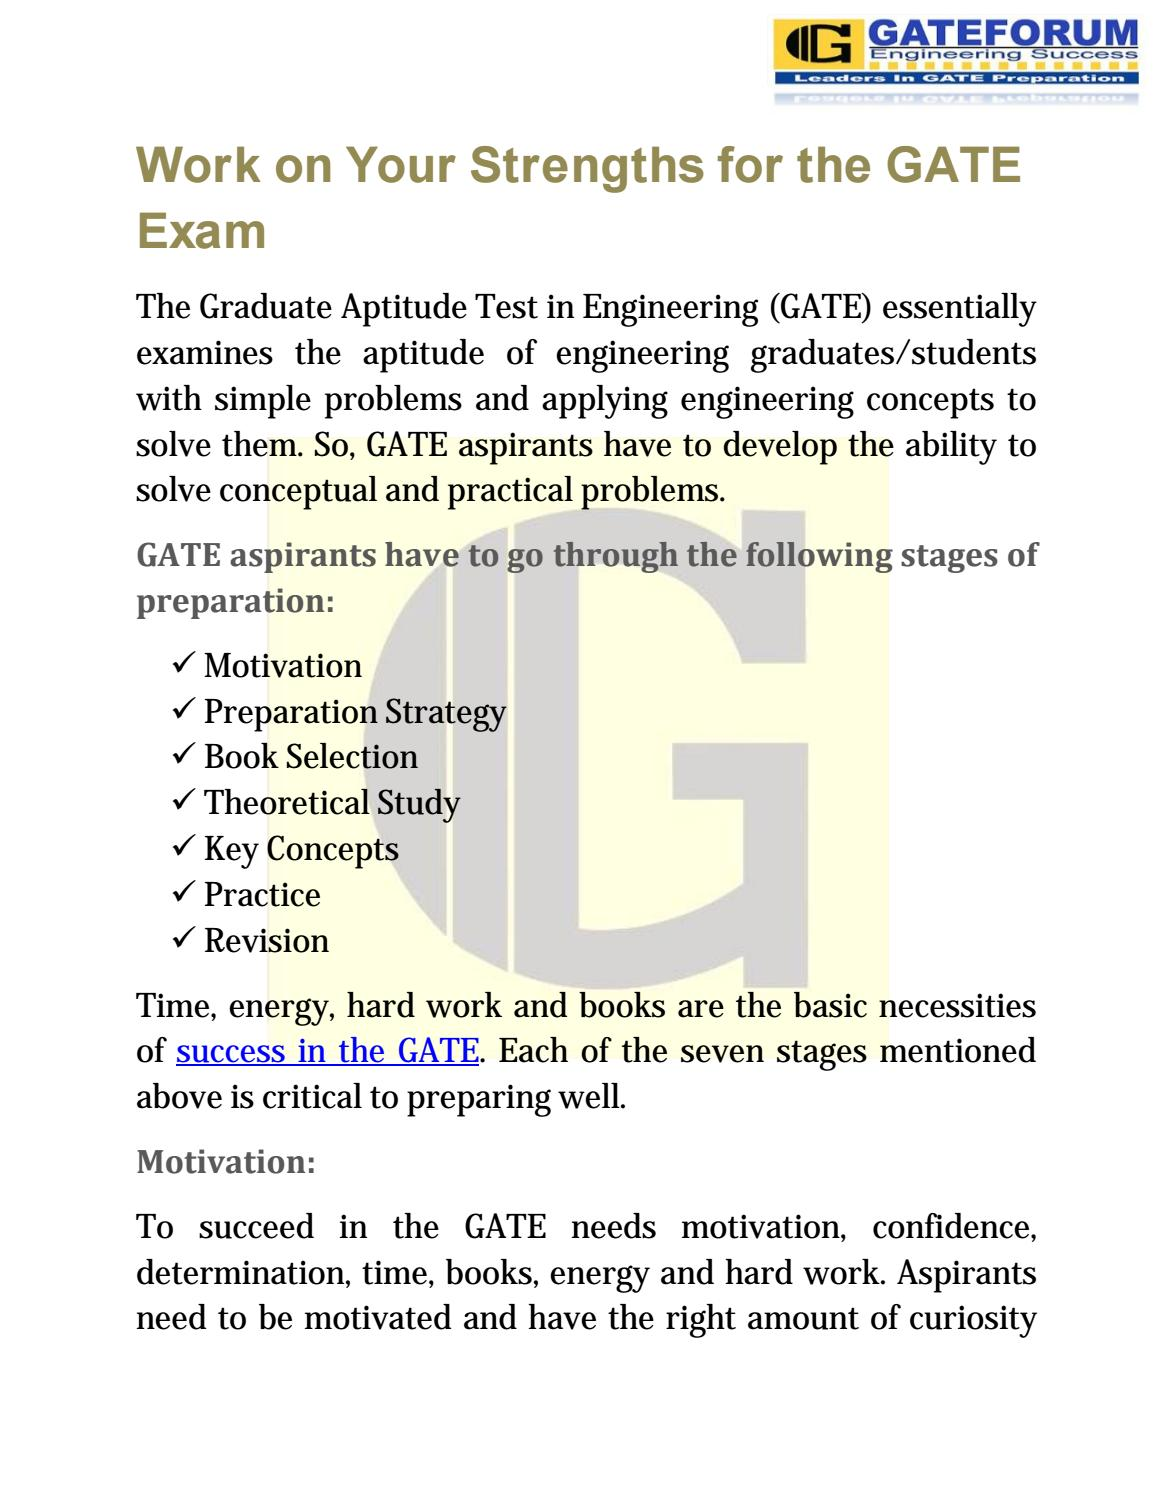 Work on your strengths for the gate exam by Megha Singh - issuu